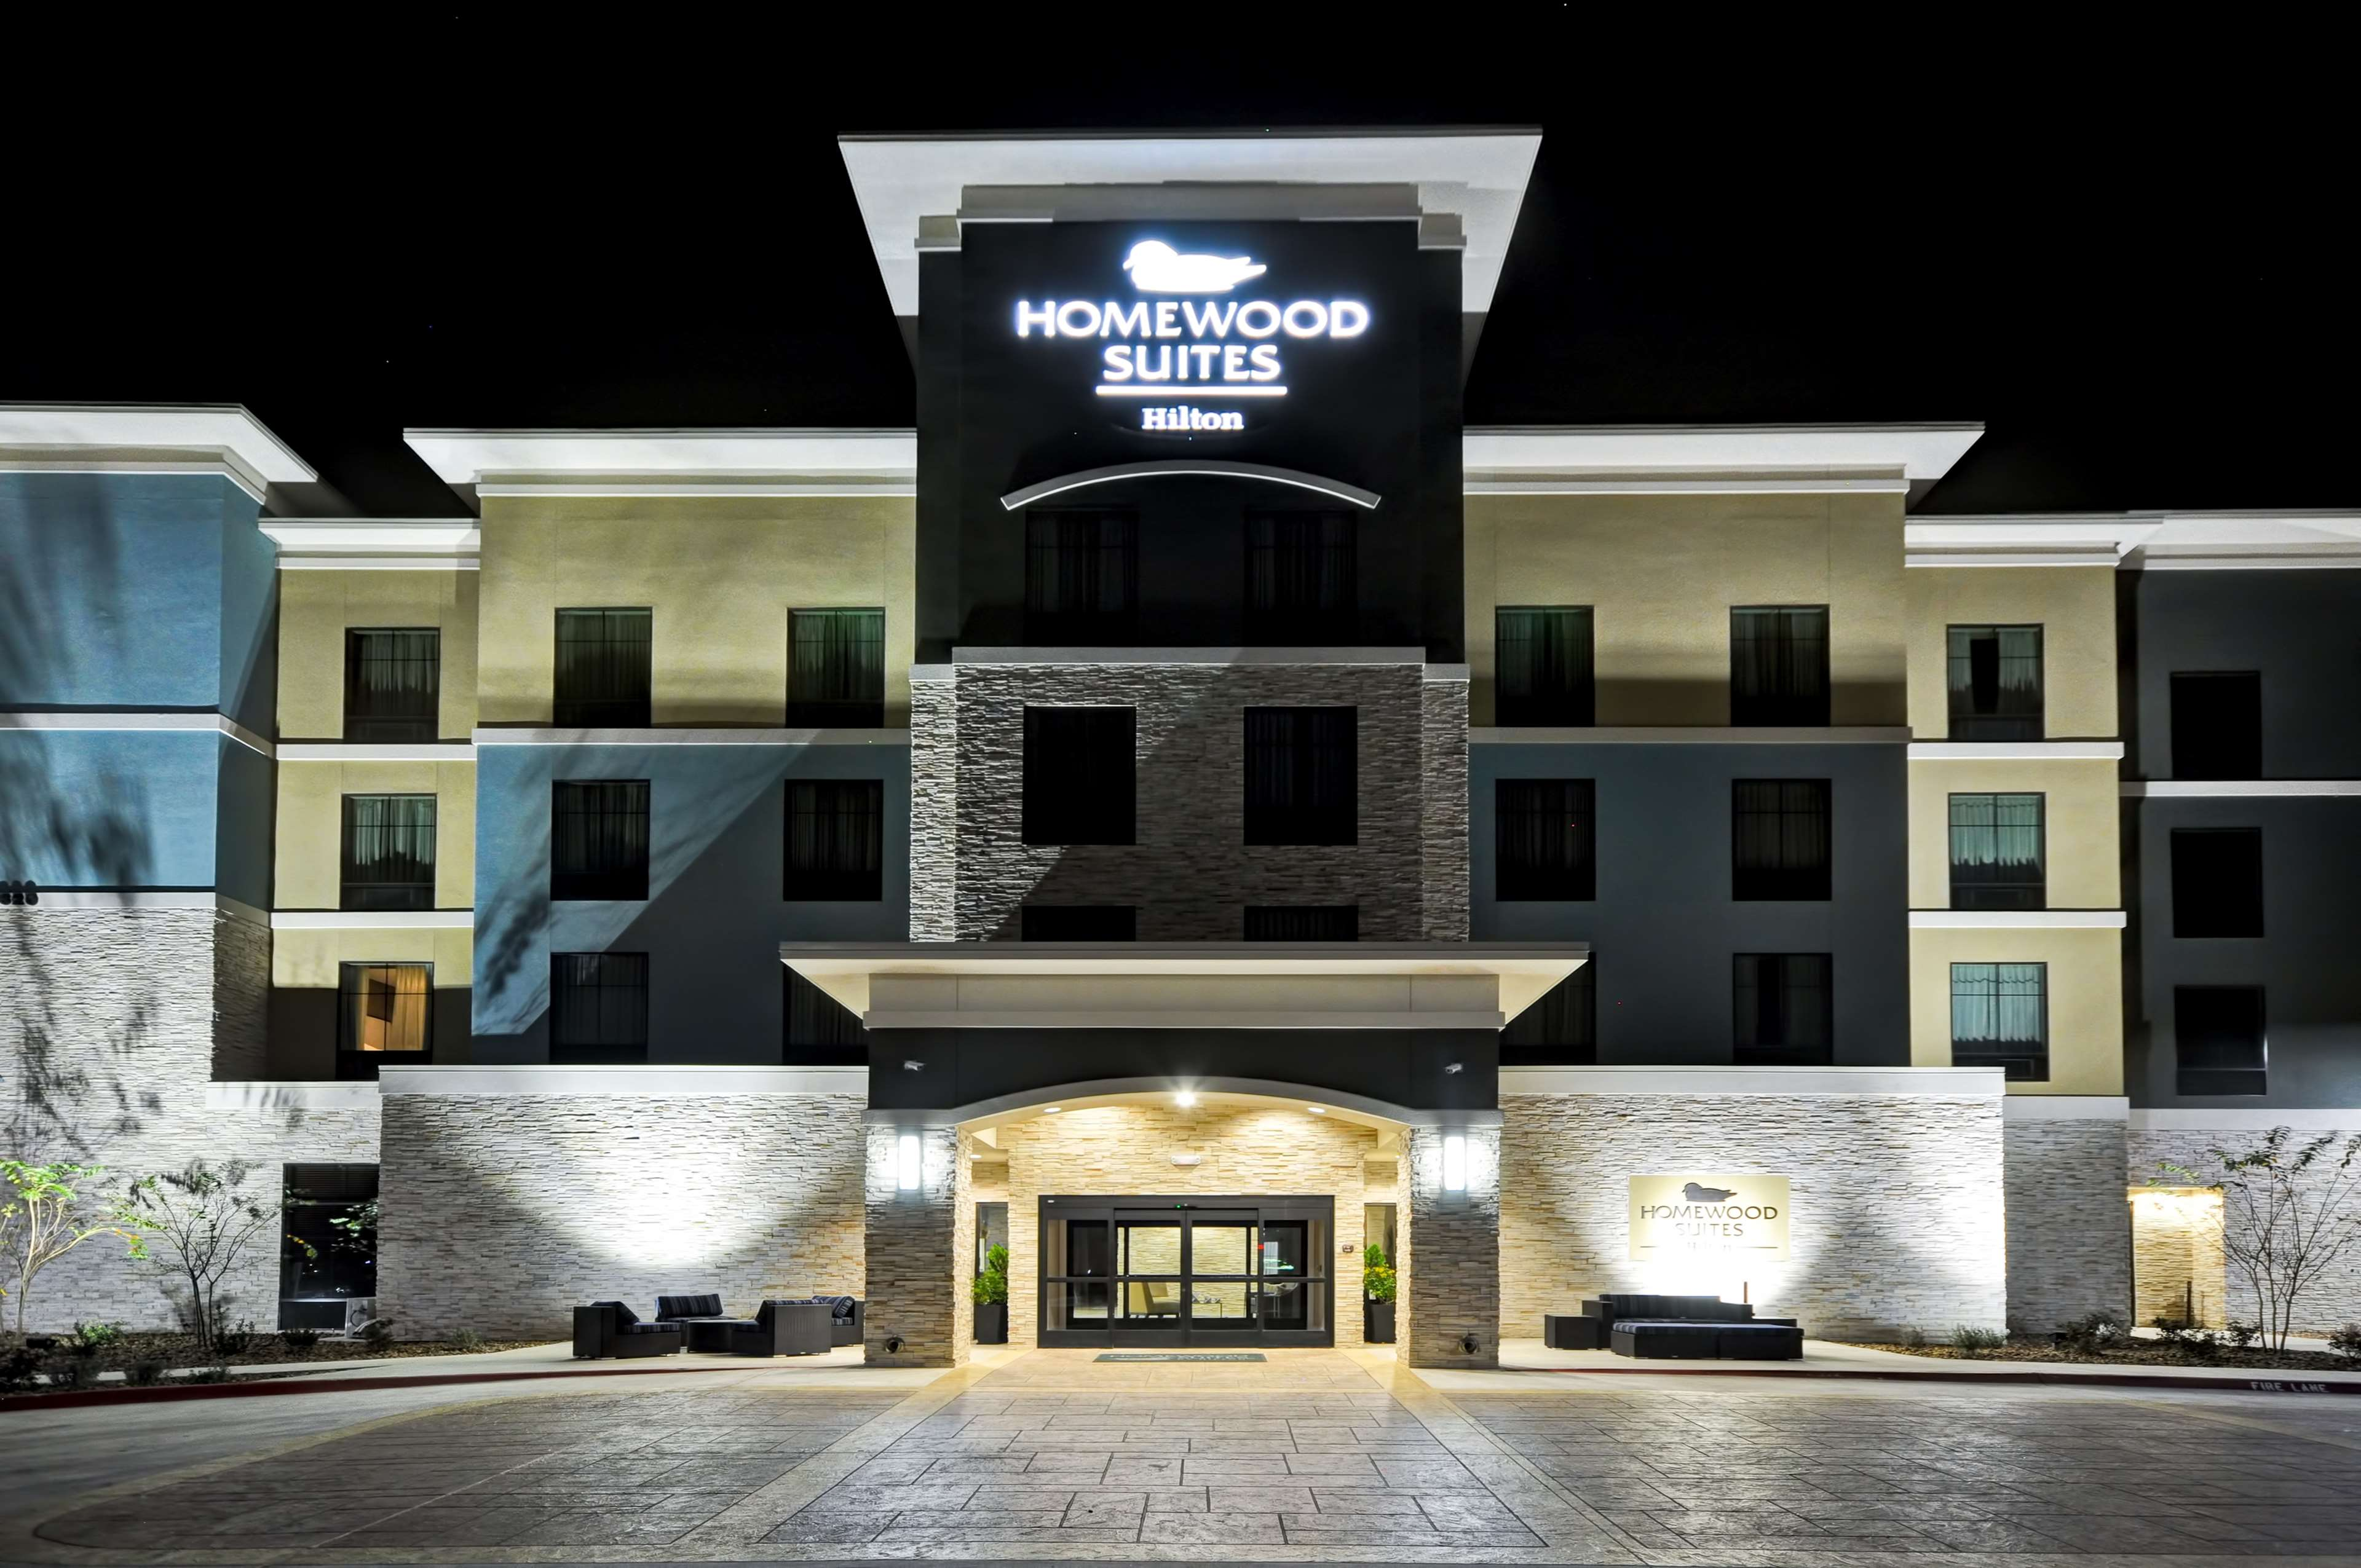 Homewood Suites by Hilton New Braunfels image 3